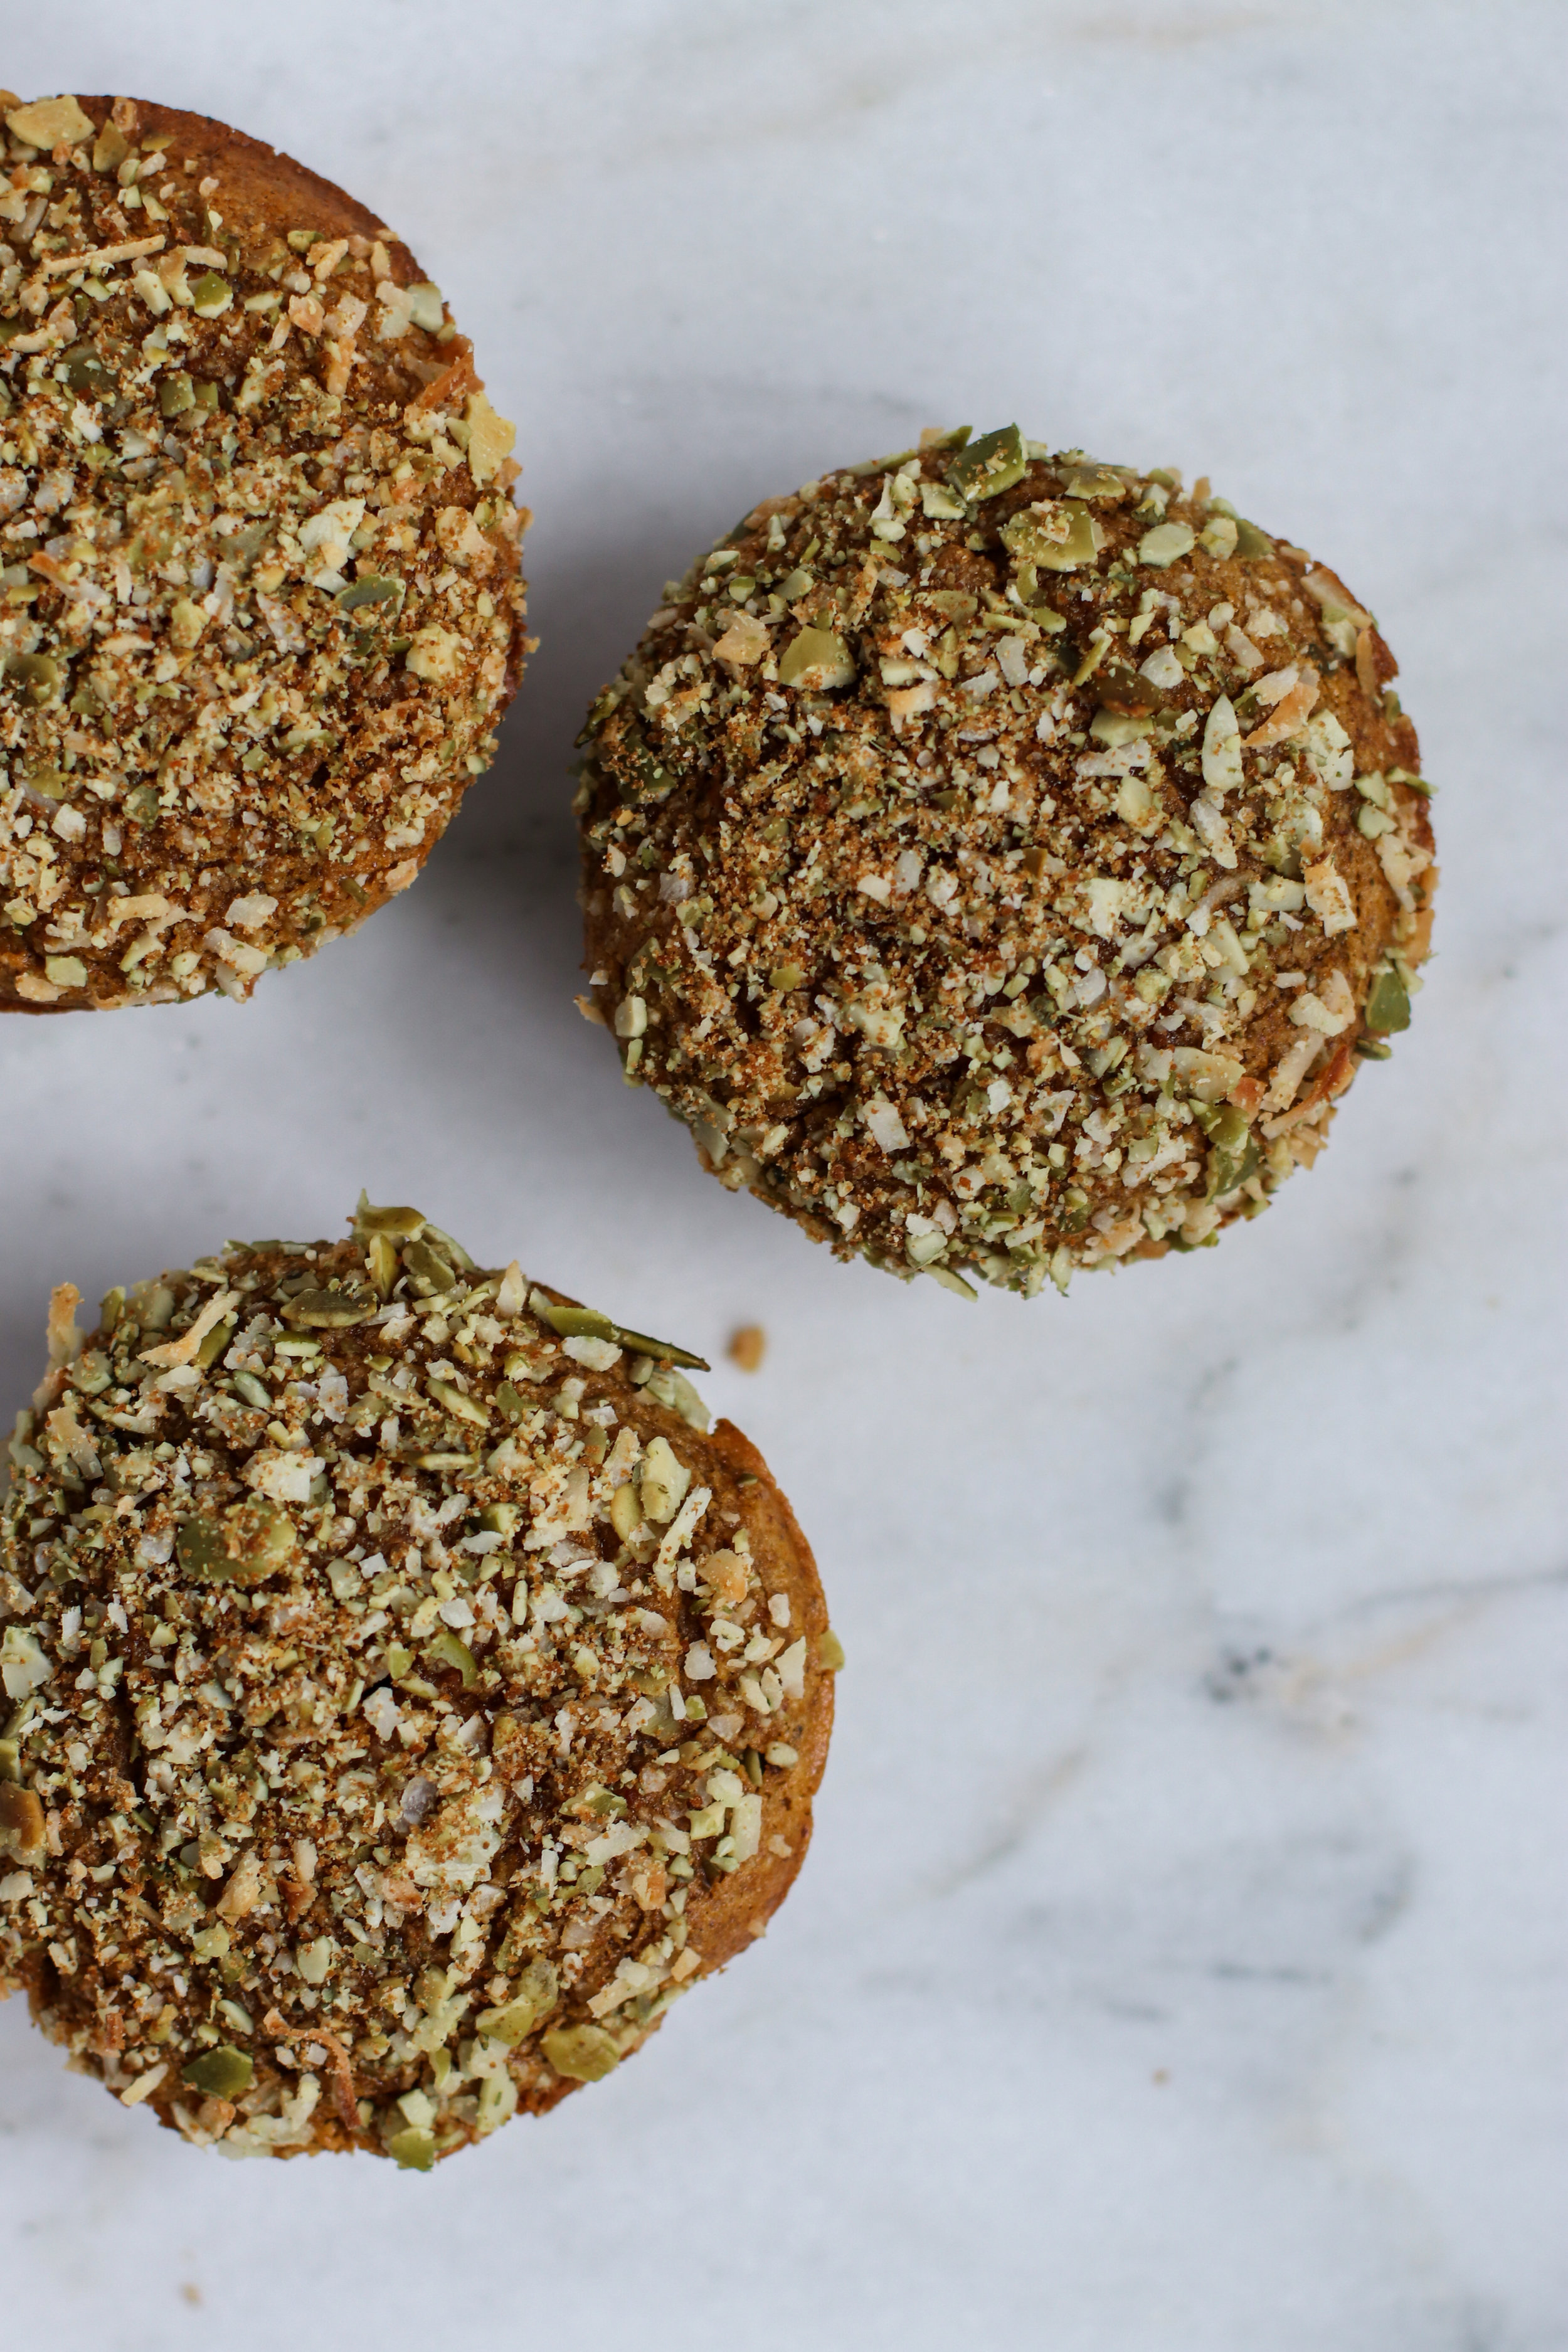 Pumpkin Spice Muffins with Coconut Crumble 7 8.jpg